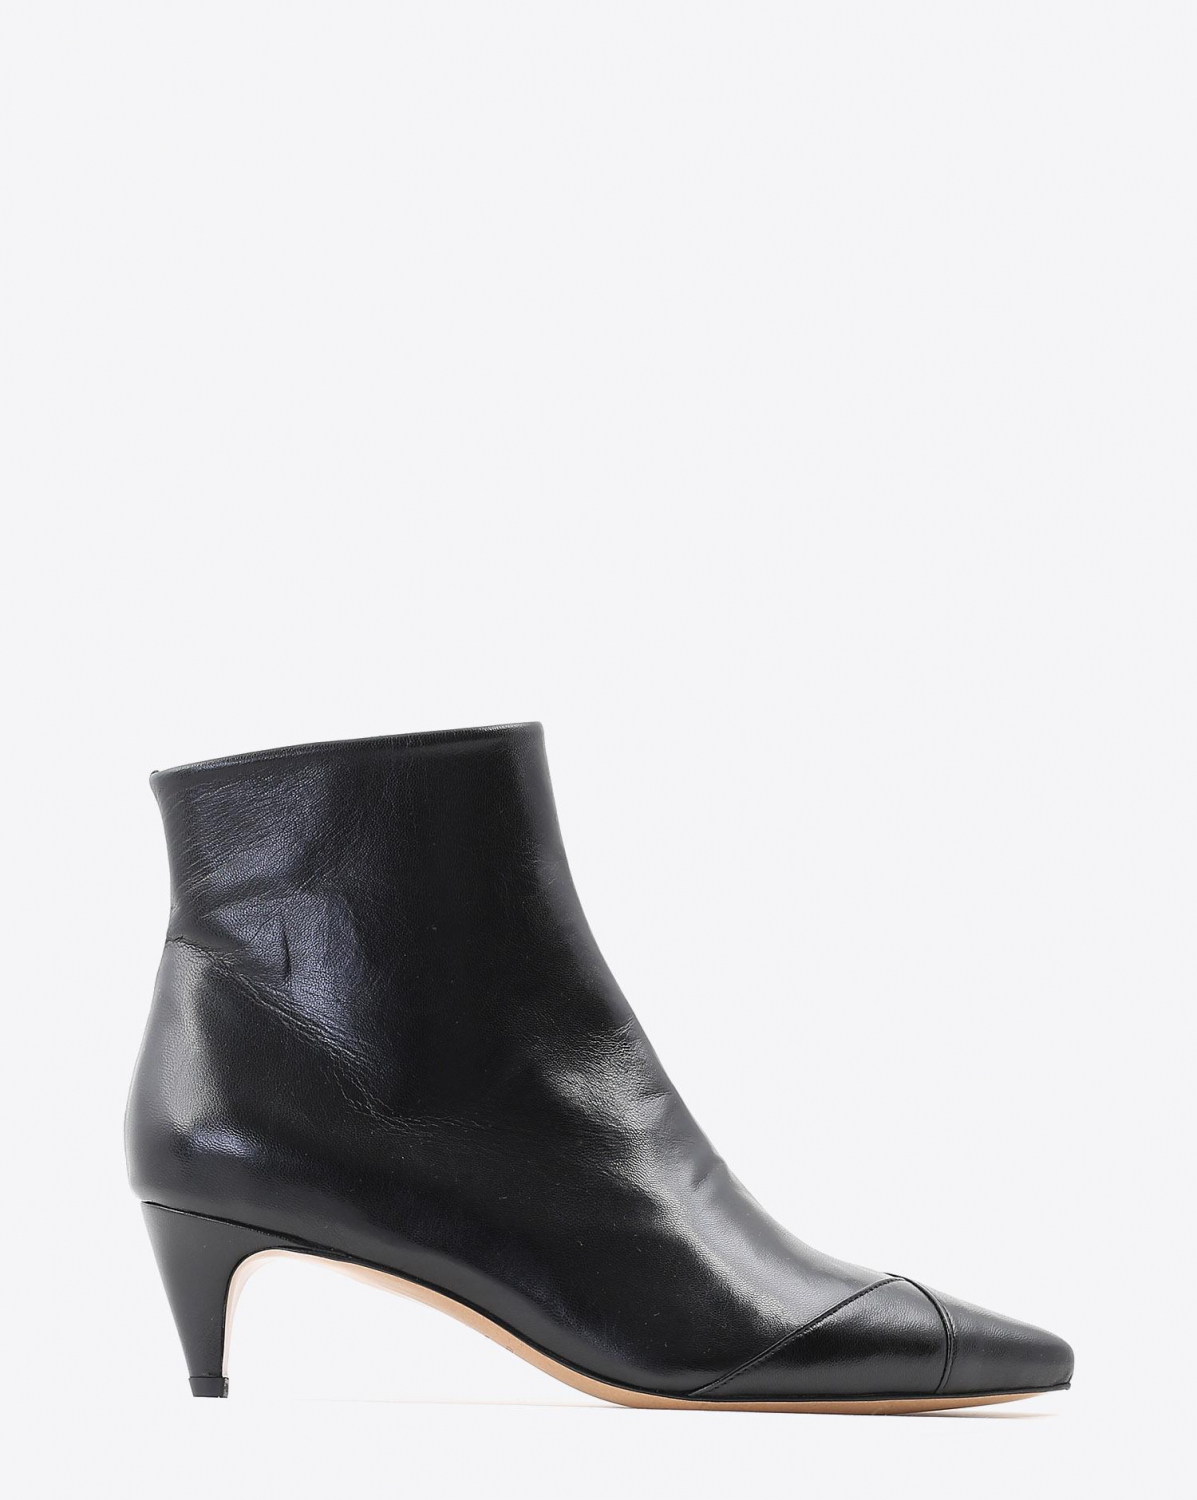 Isabel Marant Chaussures Boots DURFEE - Black